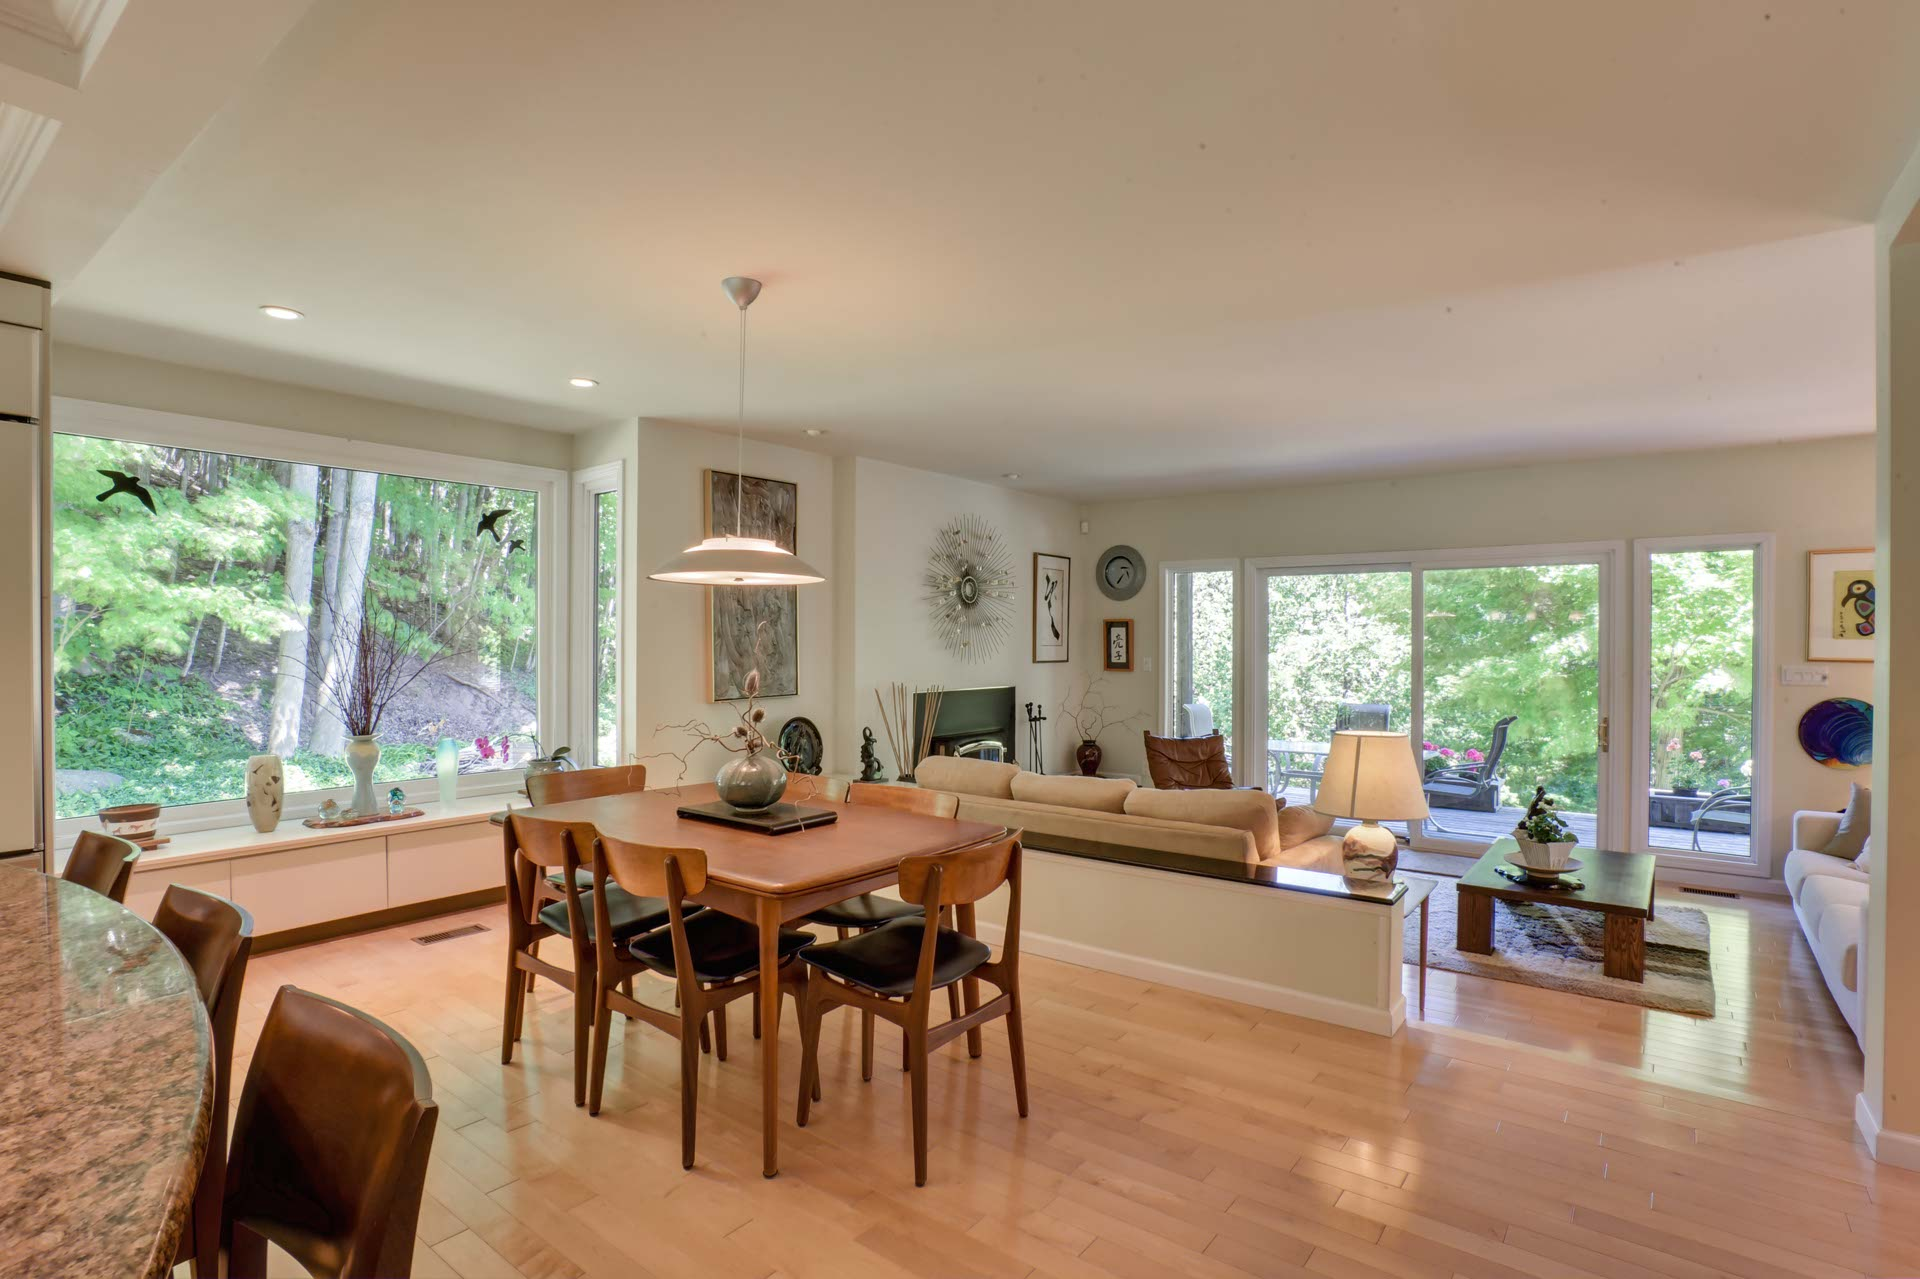 Dining Room, Maple flooring, Picture Window, Nature